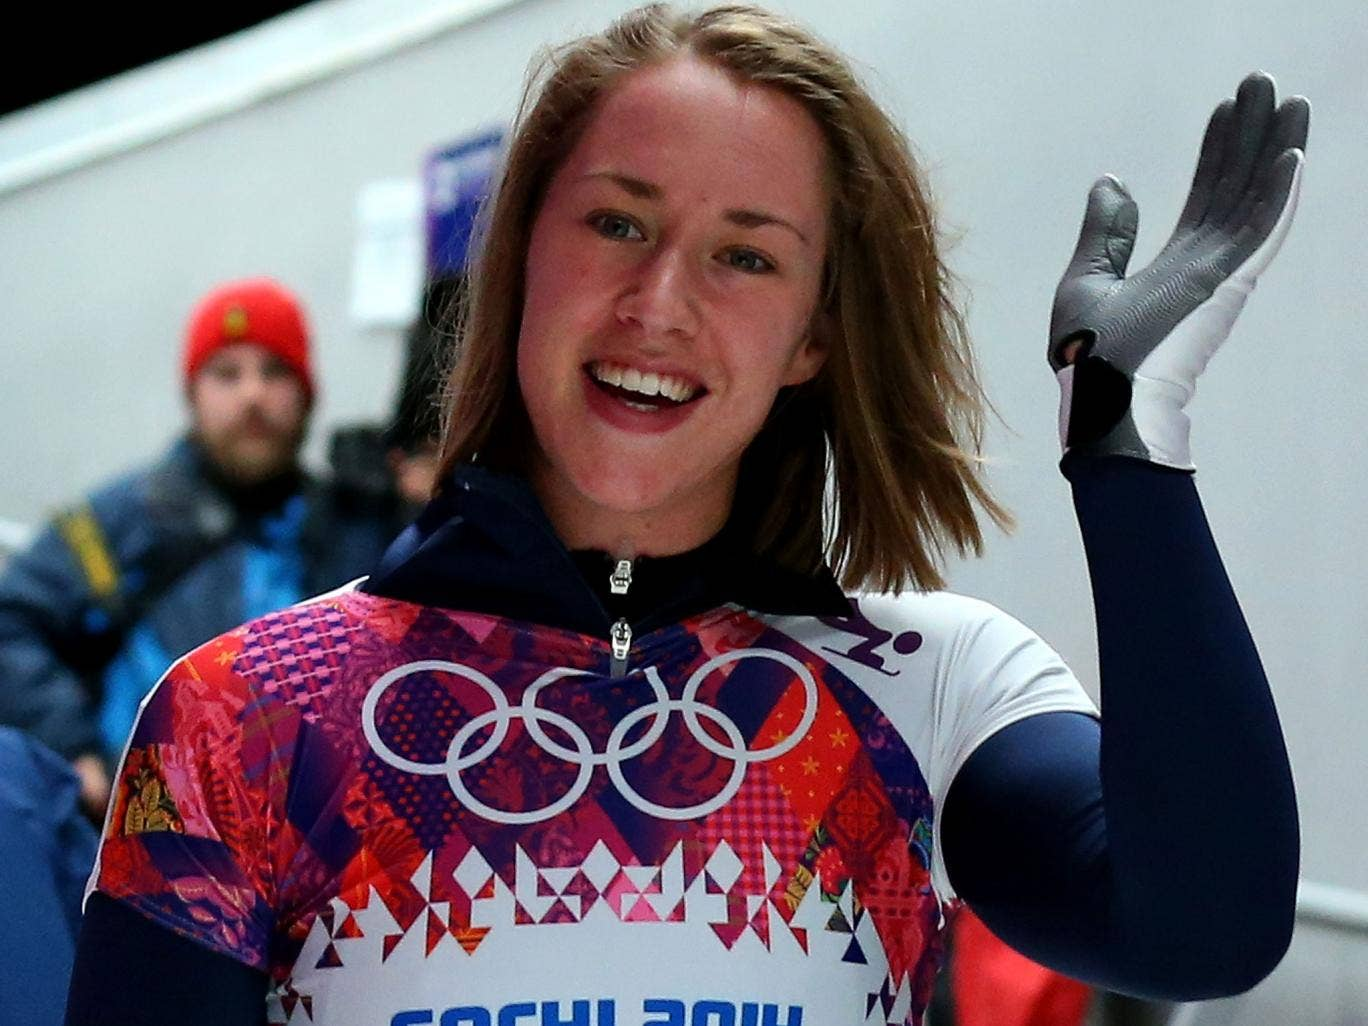 Lizzy Yarnold of Great Britain waves to fans after competing her third run during the Women's Skeleton today